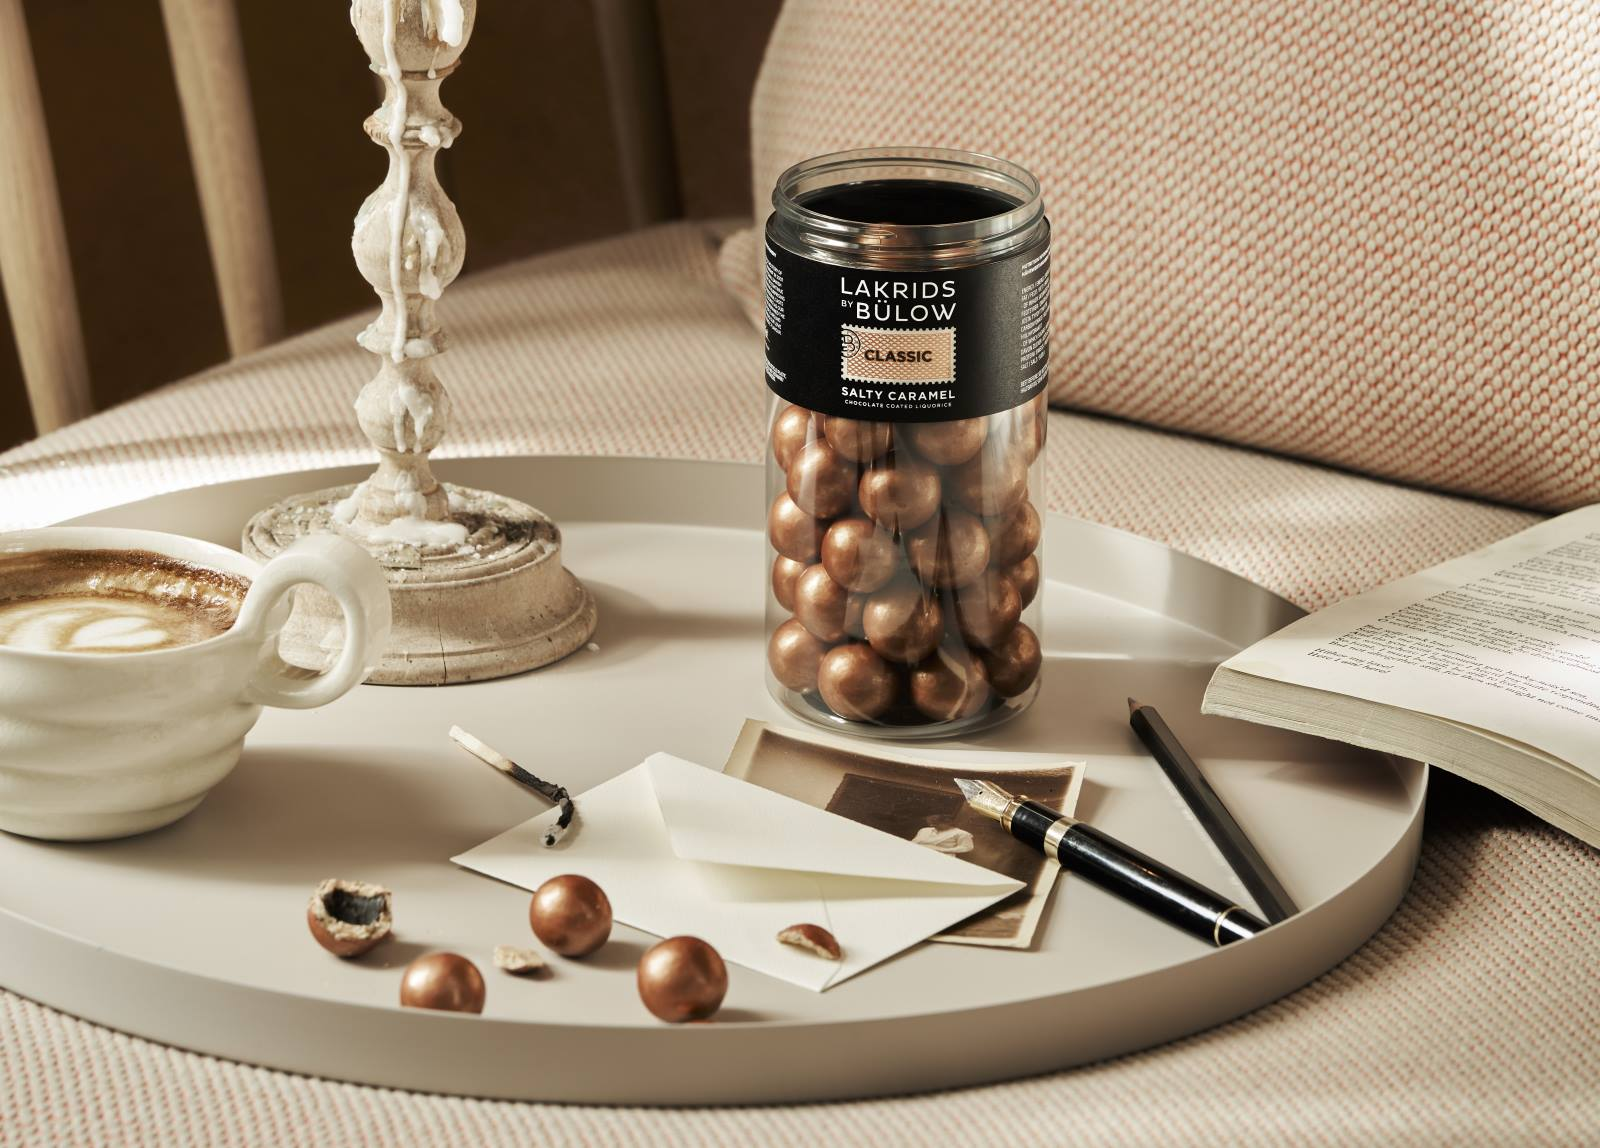 Lakrids by Bulow Classic and Gold - chocolate coated liquorice